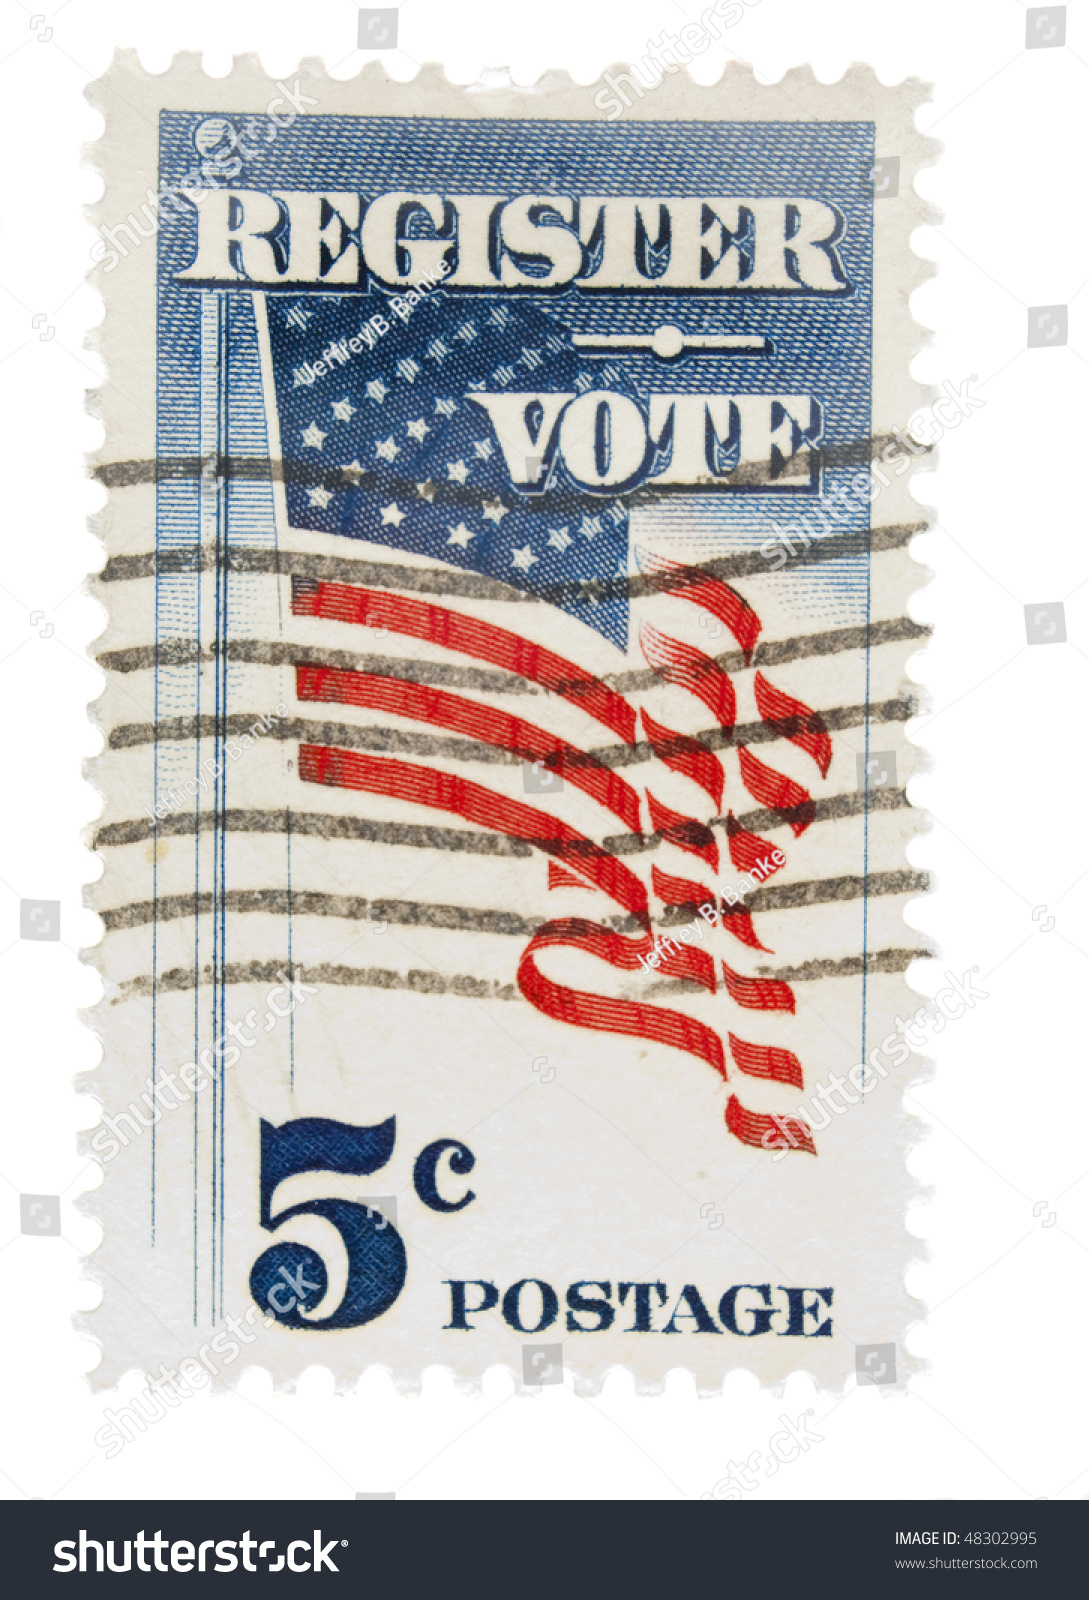 f14bab1c6a76 UNITED STATES - CIRCA 1960  A 5 cent Vintage US postage stamp depicting US  flag